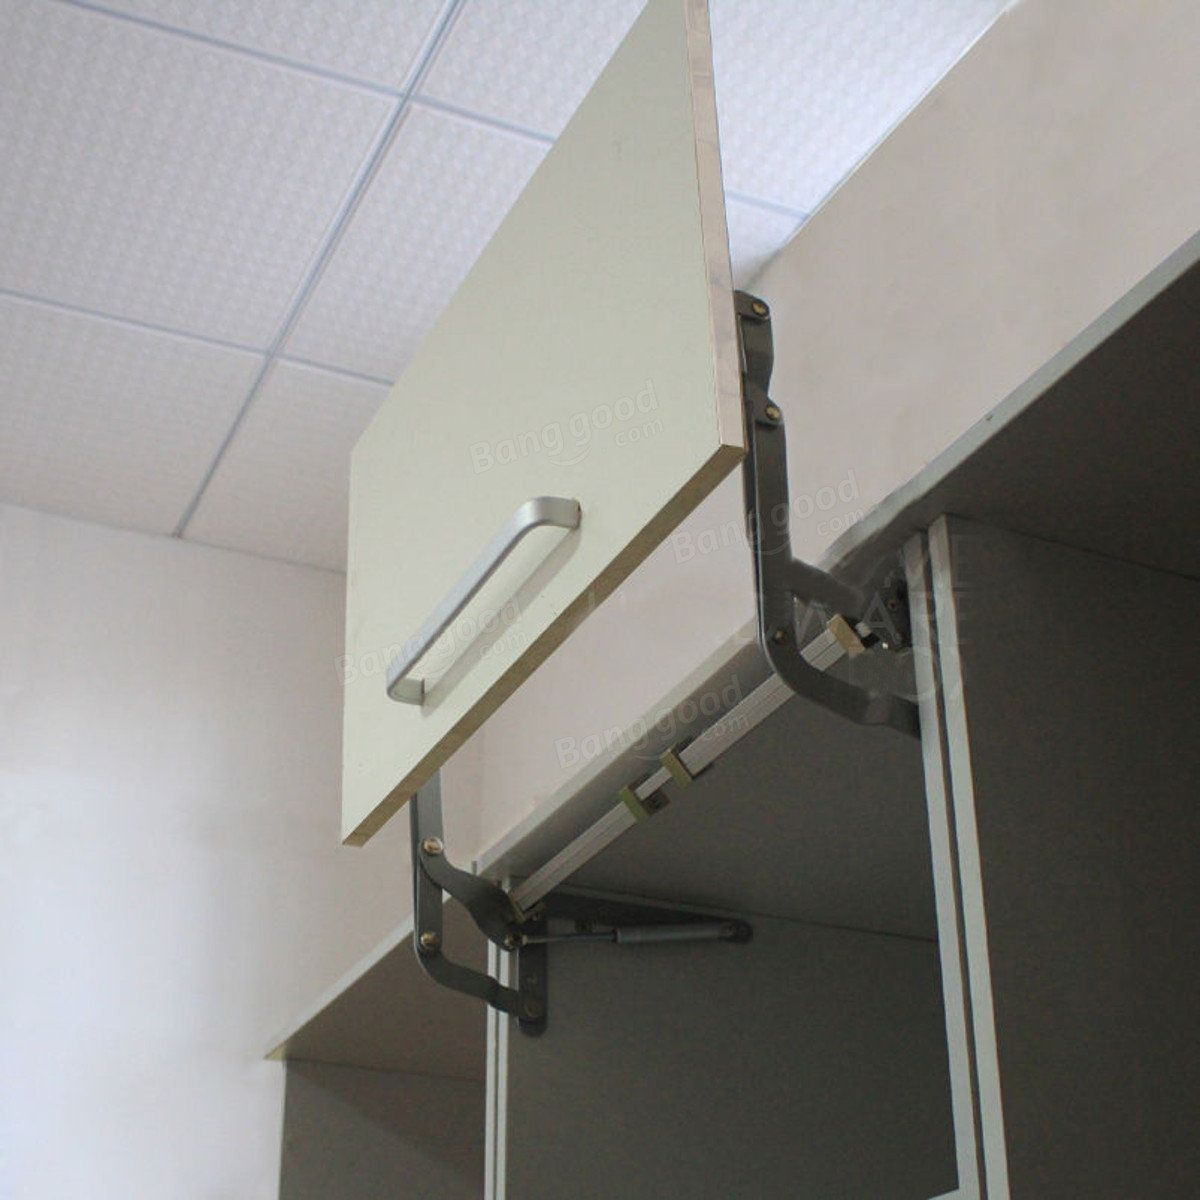 Glass cabinet door hinges  Arm Mechanism Hinges Vertical Swing Lift Up Stay Pneumatic for